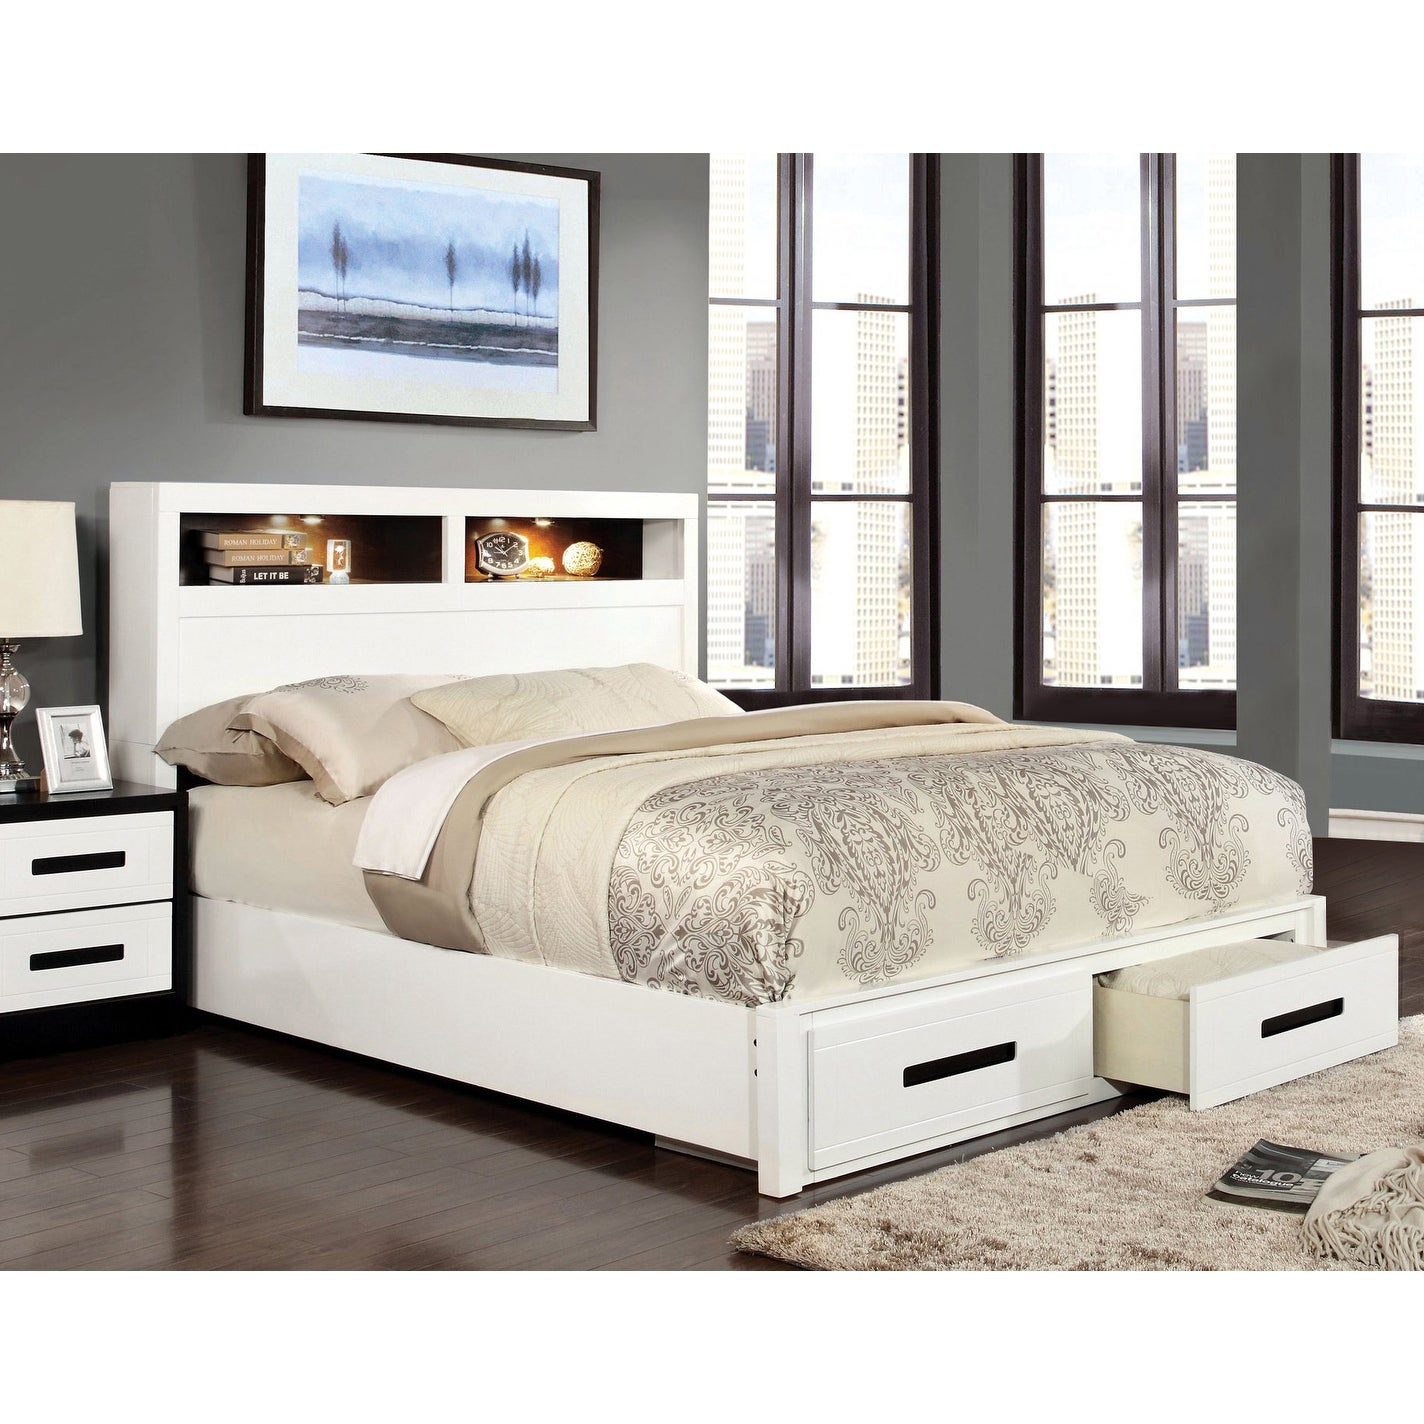 Furniture Of America Deas Modern White Solid Wood Storage Platform Bed Overstock 9978760